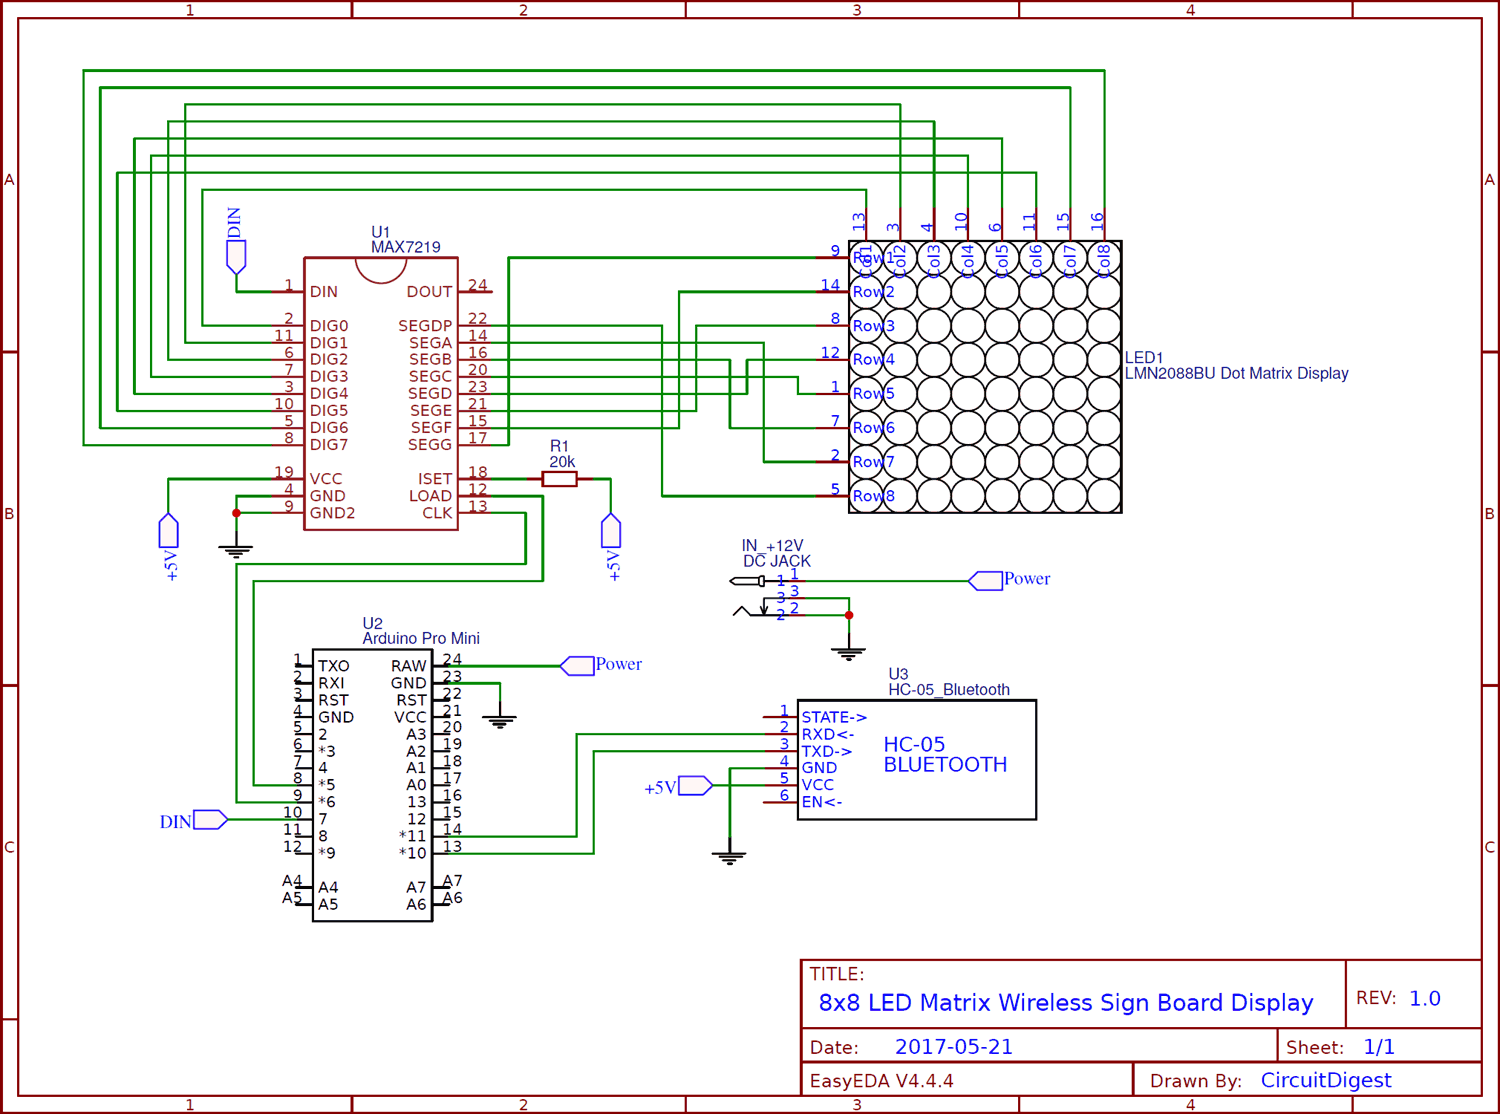 circuit diagram for bluetooth controlled 8x8 led wireless sign board display using arduino [ 1500 x 1114 Pixel ]